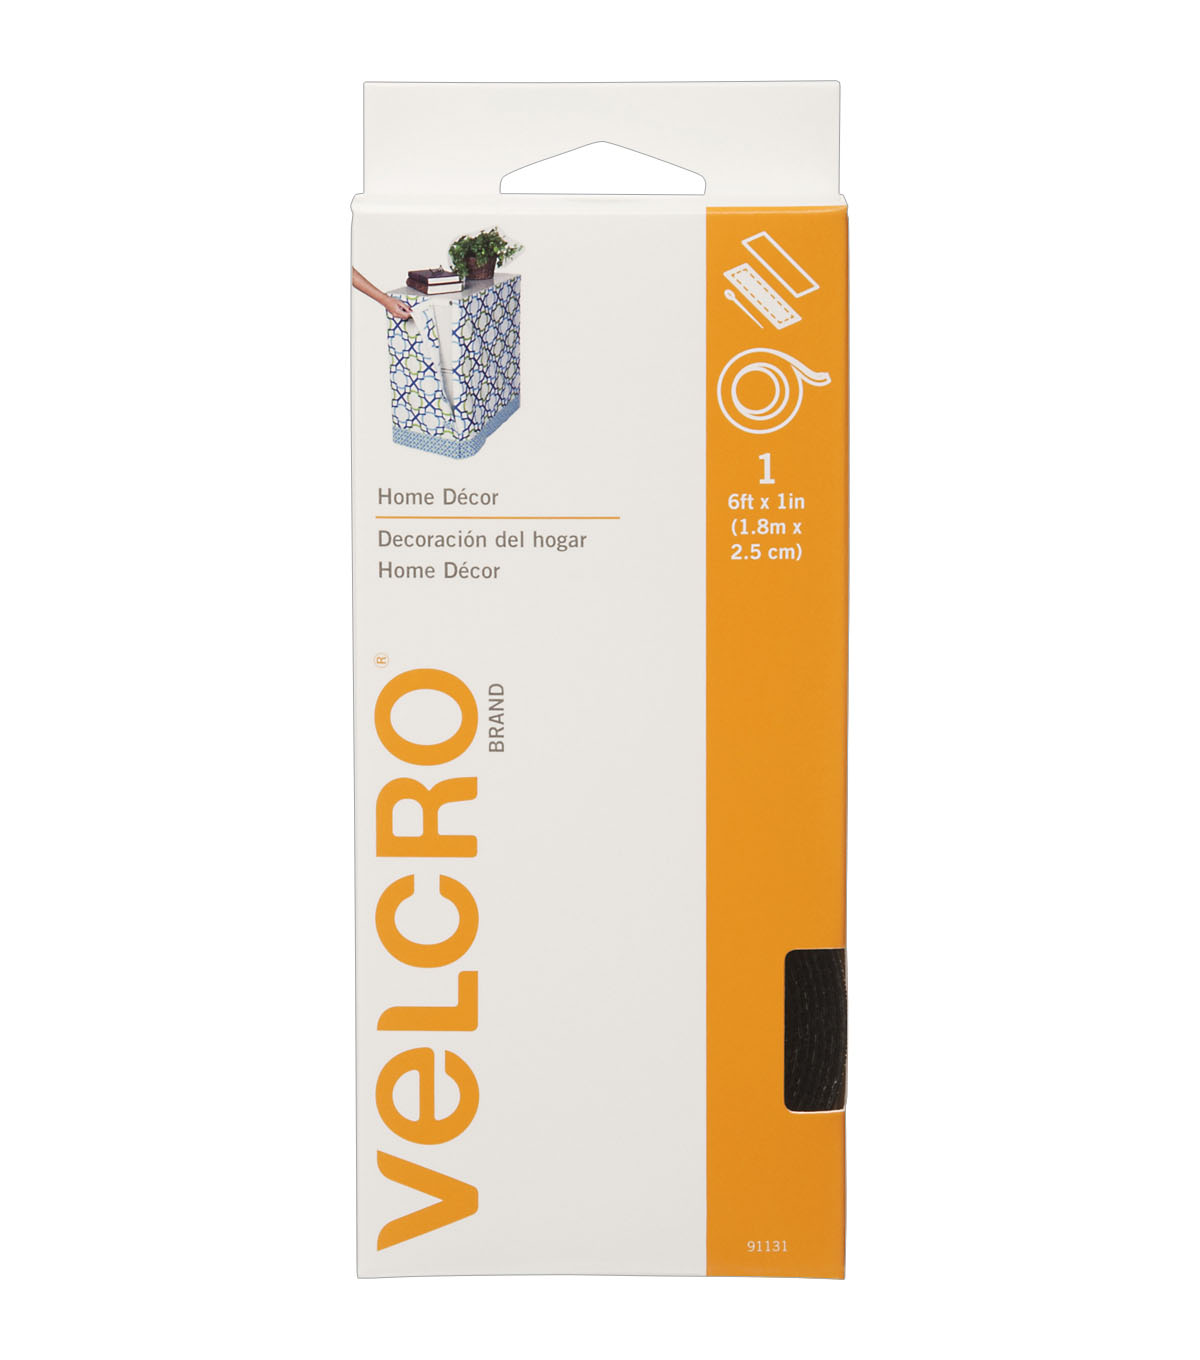 VELCRO Brand 1\u0027\u0027x 6\u0027 Home Decor Tape